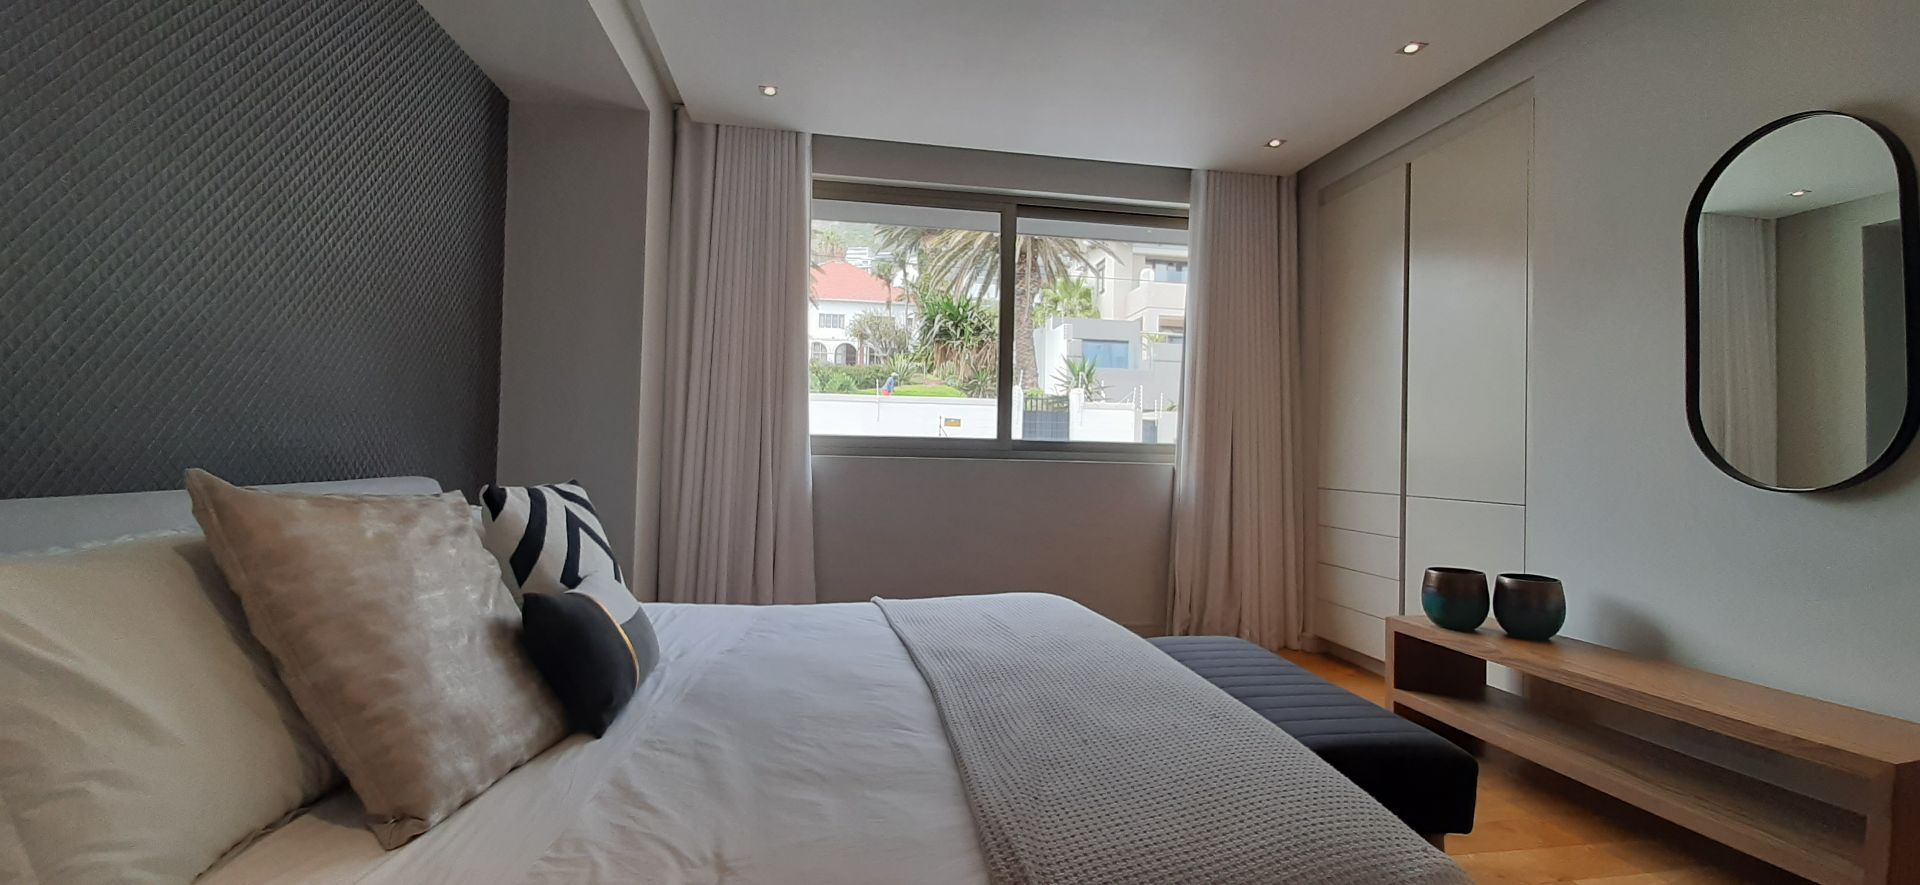 Apartment in Bantry Bay - Bedroom (2).jpg